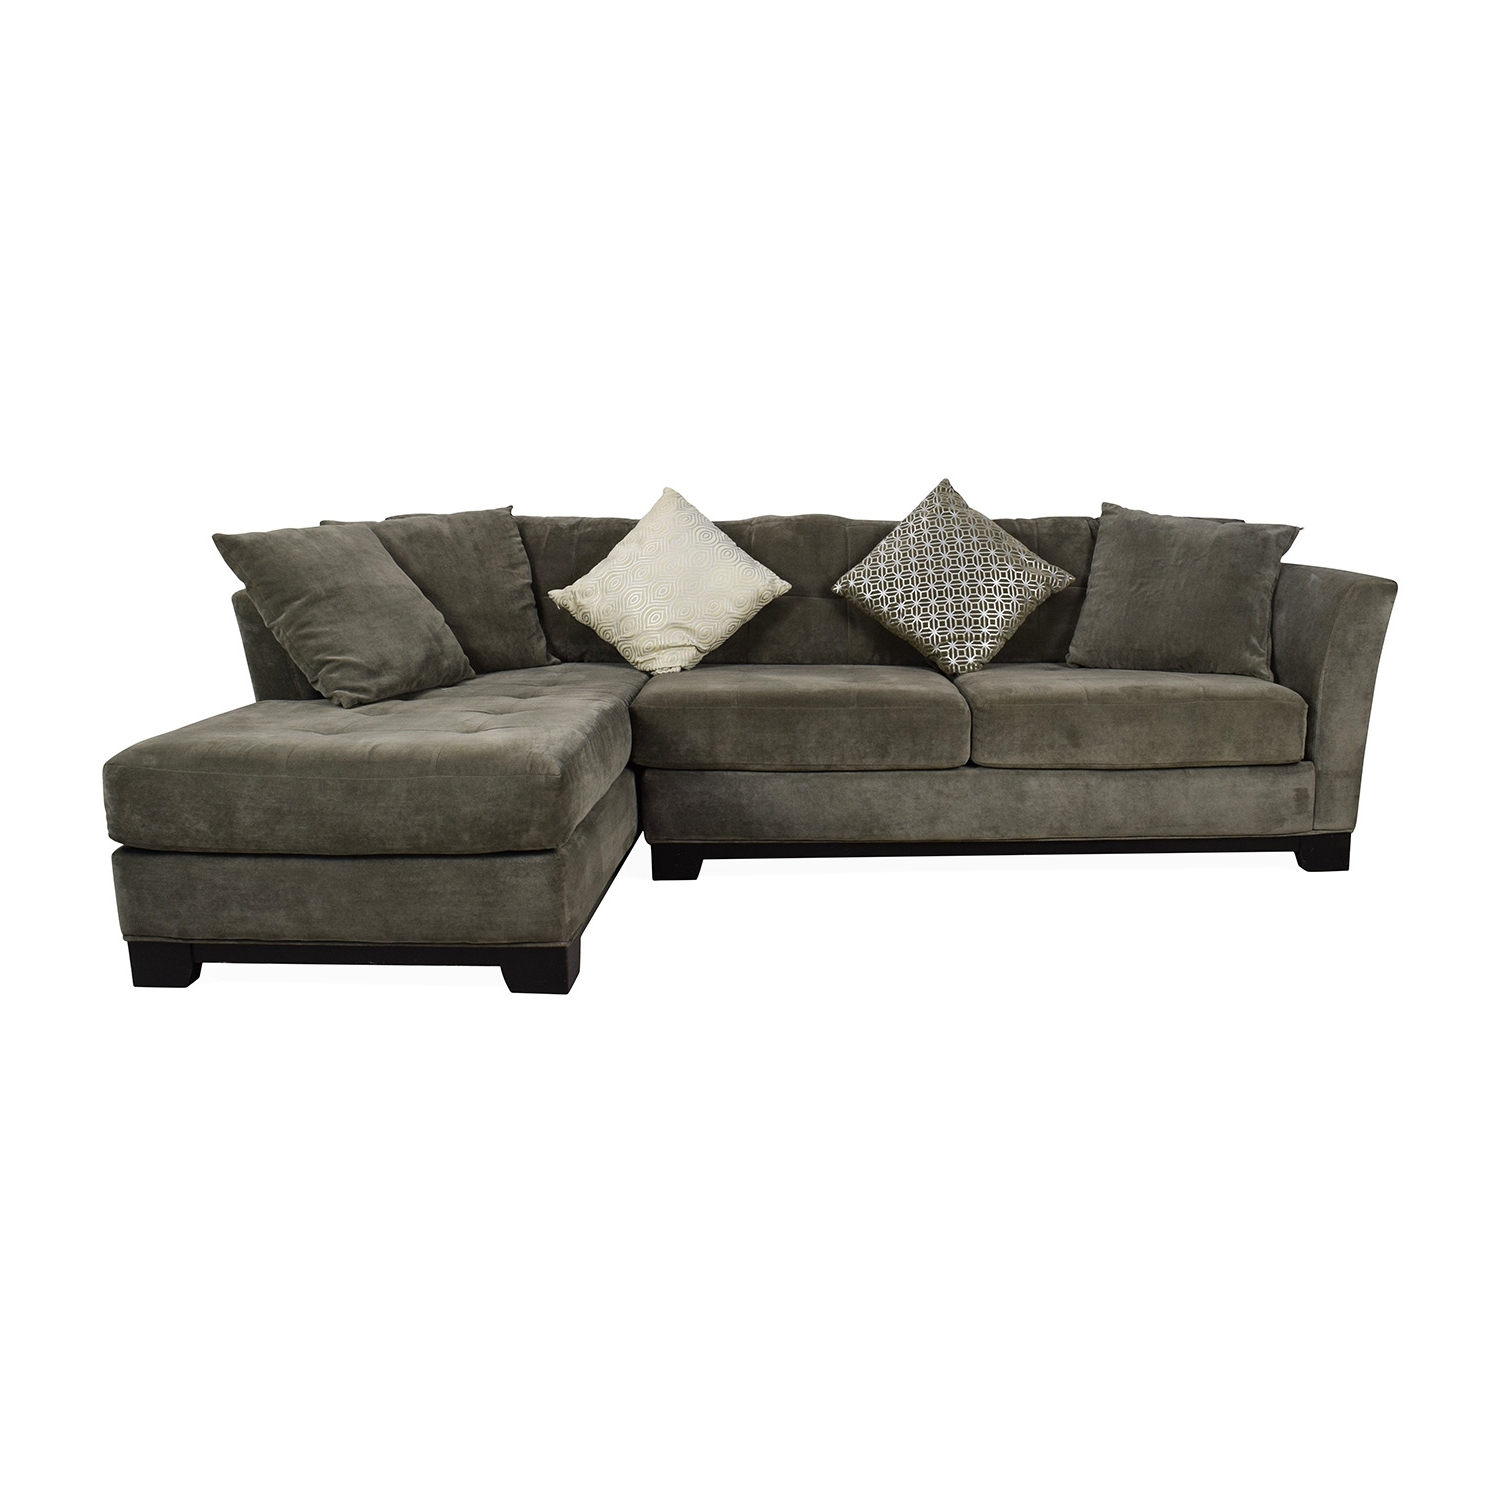 [%50% Off – Macy's Macy's Gray Sectional Couch With Chaise / Sofas With Famous Gray Couches With Chaise|Gray Couches With Chaise With Recent 50% Off – Macy's Macy's Gray Sectional Couch With Chaise / Sofas|Most Up To Date Gray Couches With Chaise For 50% Off – Macy's Macy's Gray Sectional Couch With Chaise / Sofas|Newest 50% Off – Macy's Macy's Gray Sectional Couch With Chaise / Sofas Intended For Gray Couches With Chaise%] (View 1 of 15)